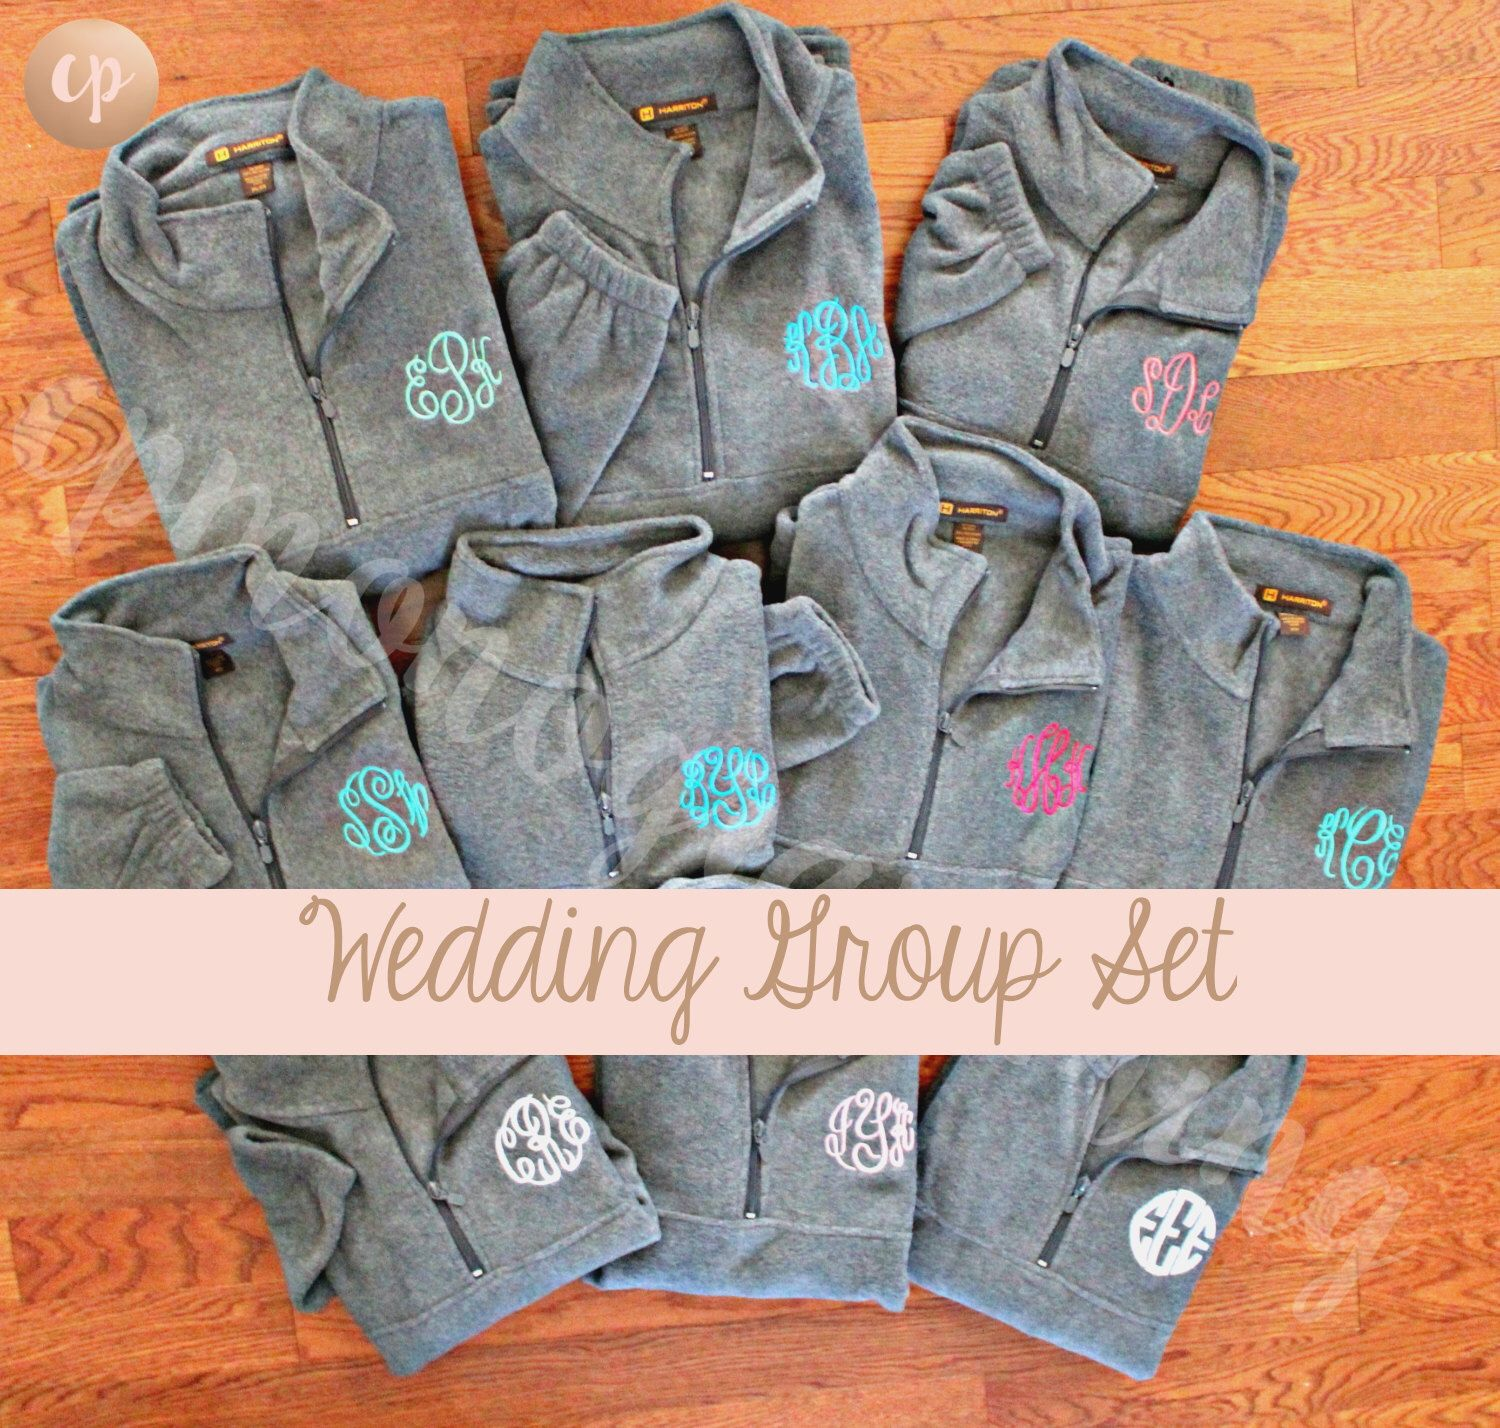 Bridal Party | Monogram Bridesmaid | Monogram Fleece | Wedding Pullover | Monogram Fleece Pullover | Monogrammed Pullover | Bridesmaid Gift by CPMONOGRAMMING on Etsy https://www.etsy.com/listing/482389418/bridal-party-monogram-bridesmaid